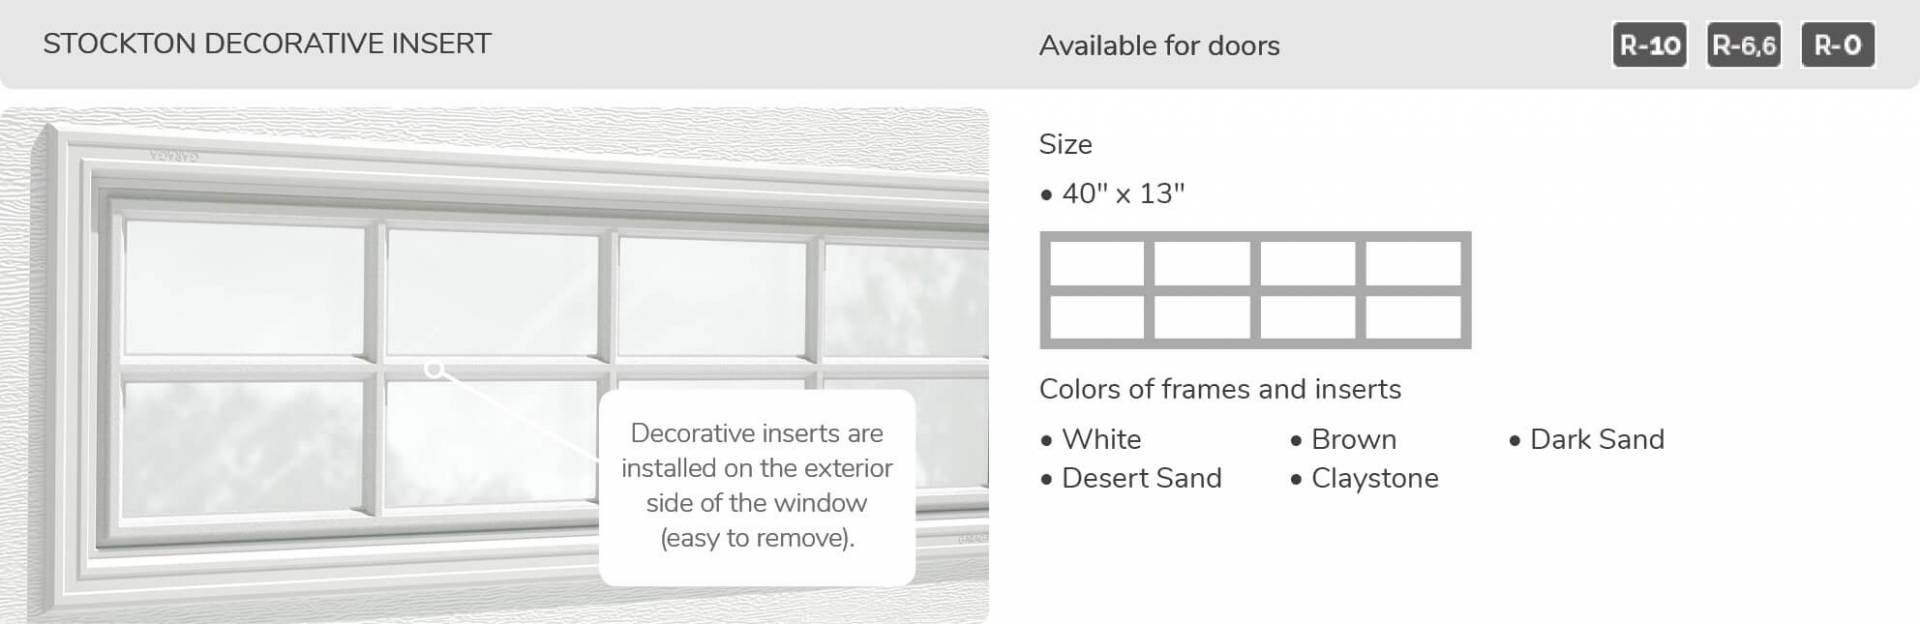 Stockton Decorative Insert, 40' x 13', available for doors R-10, R-6.6, R-0